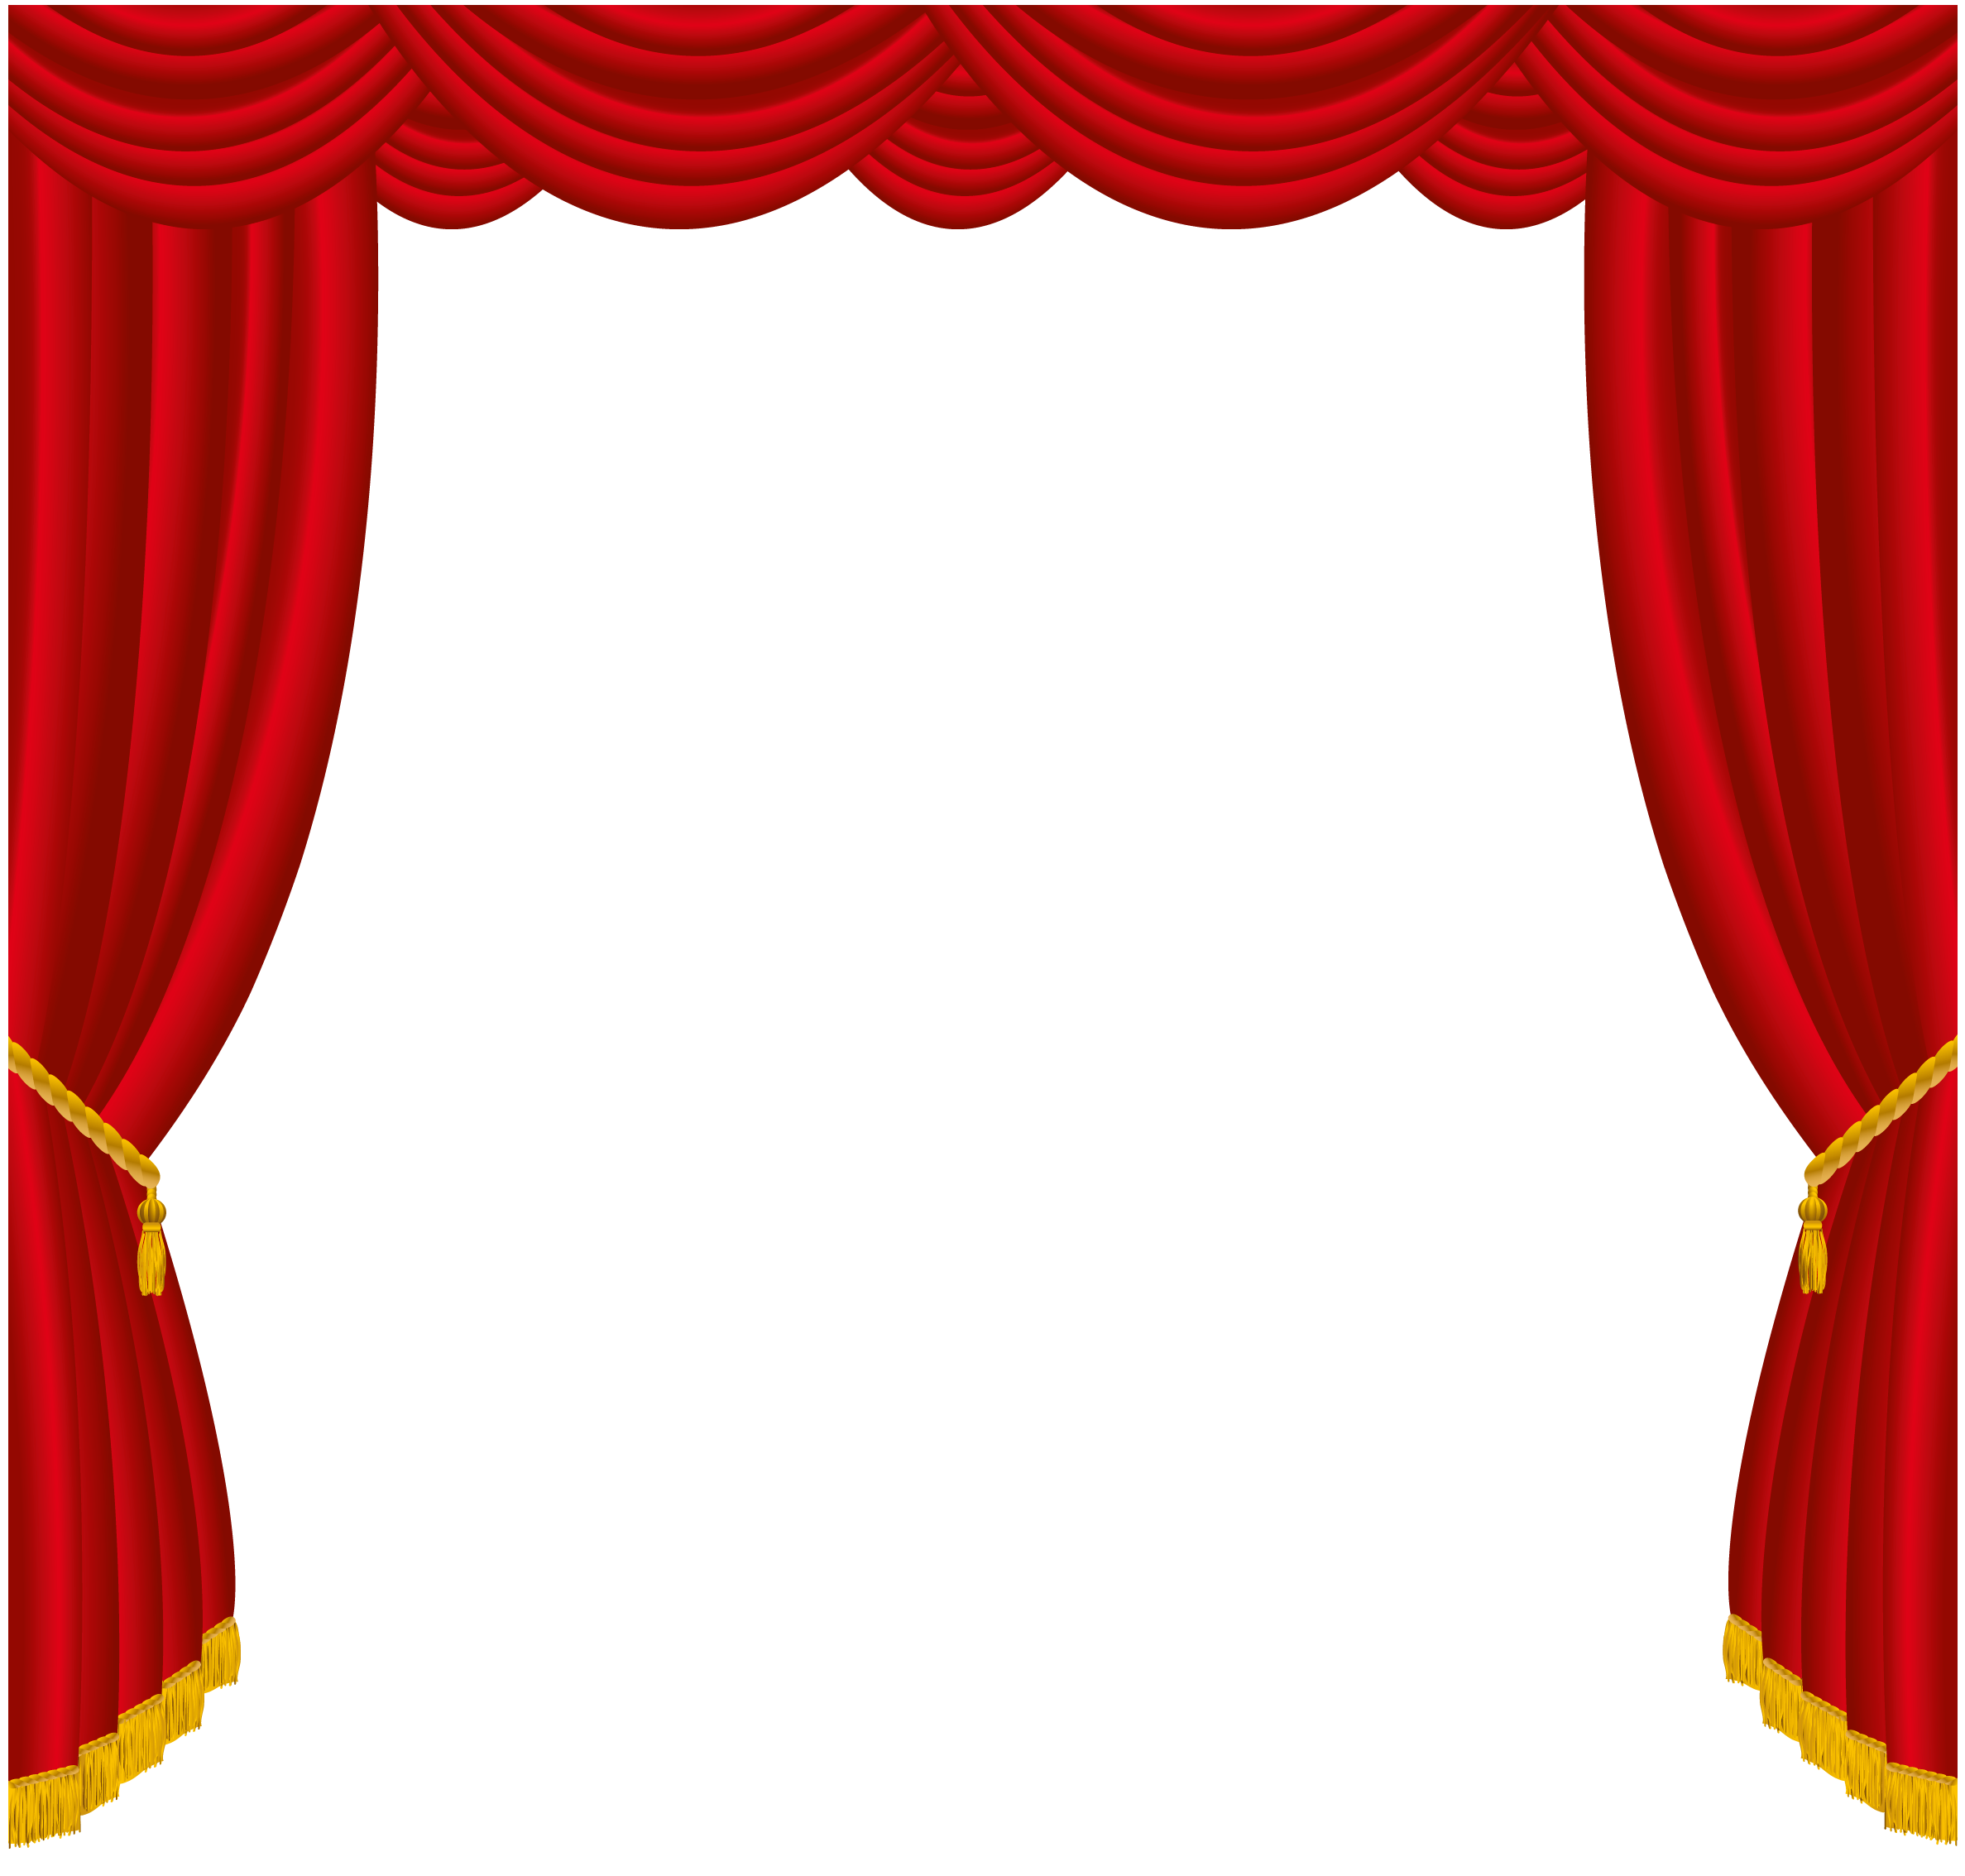 Theater Backgrounds Png - Pin by nengsyh on Art | Red curtains, Curtains, Stage curtains